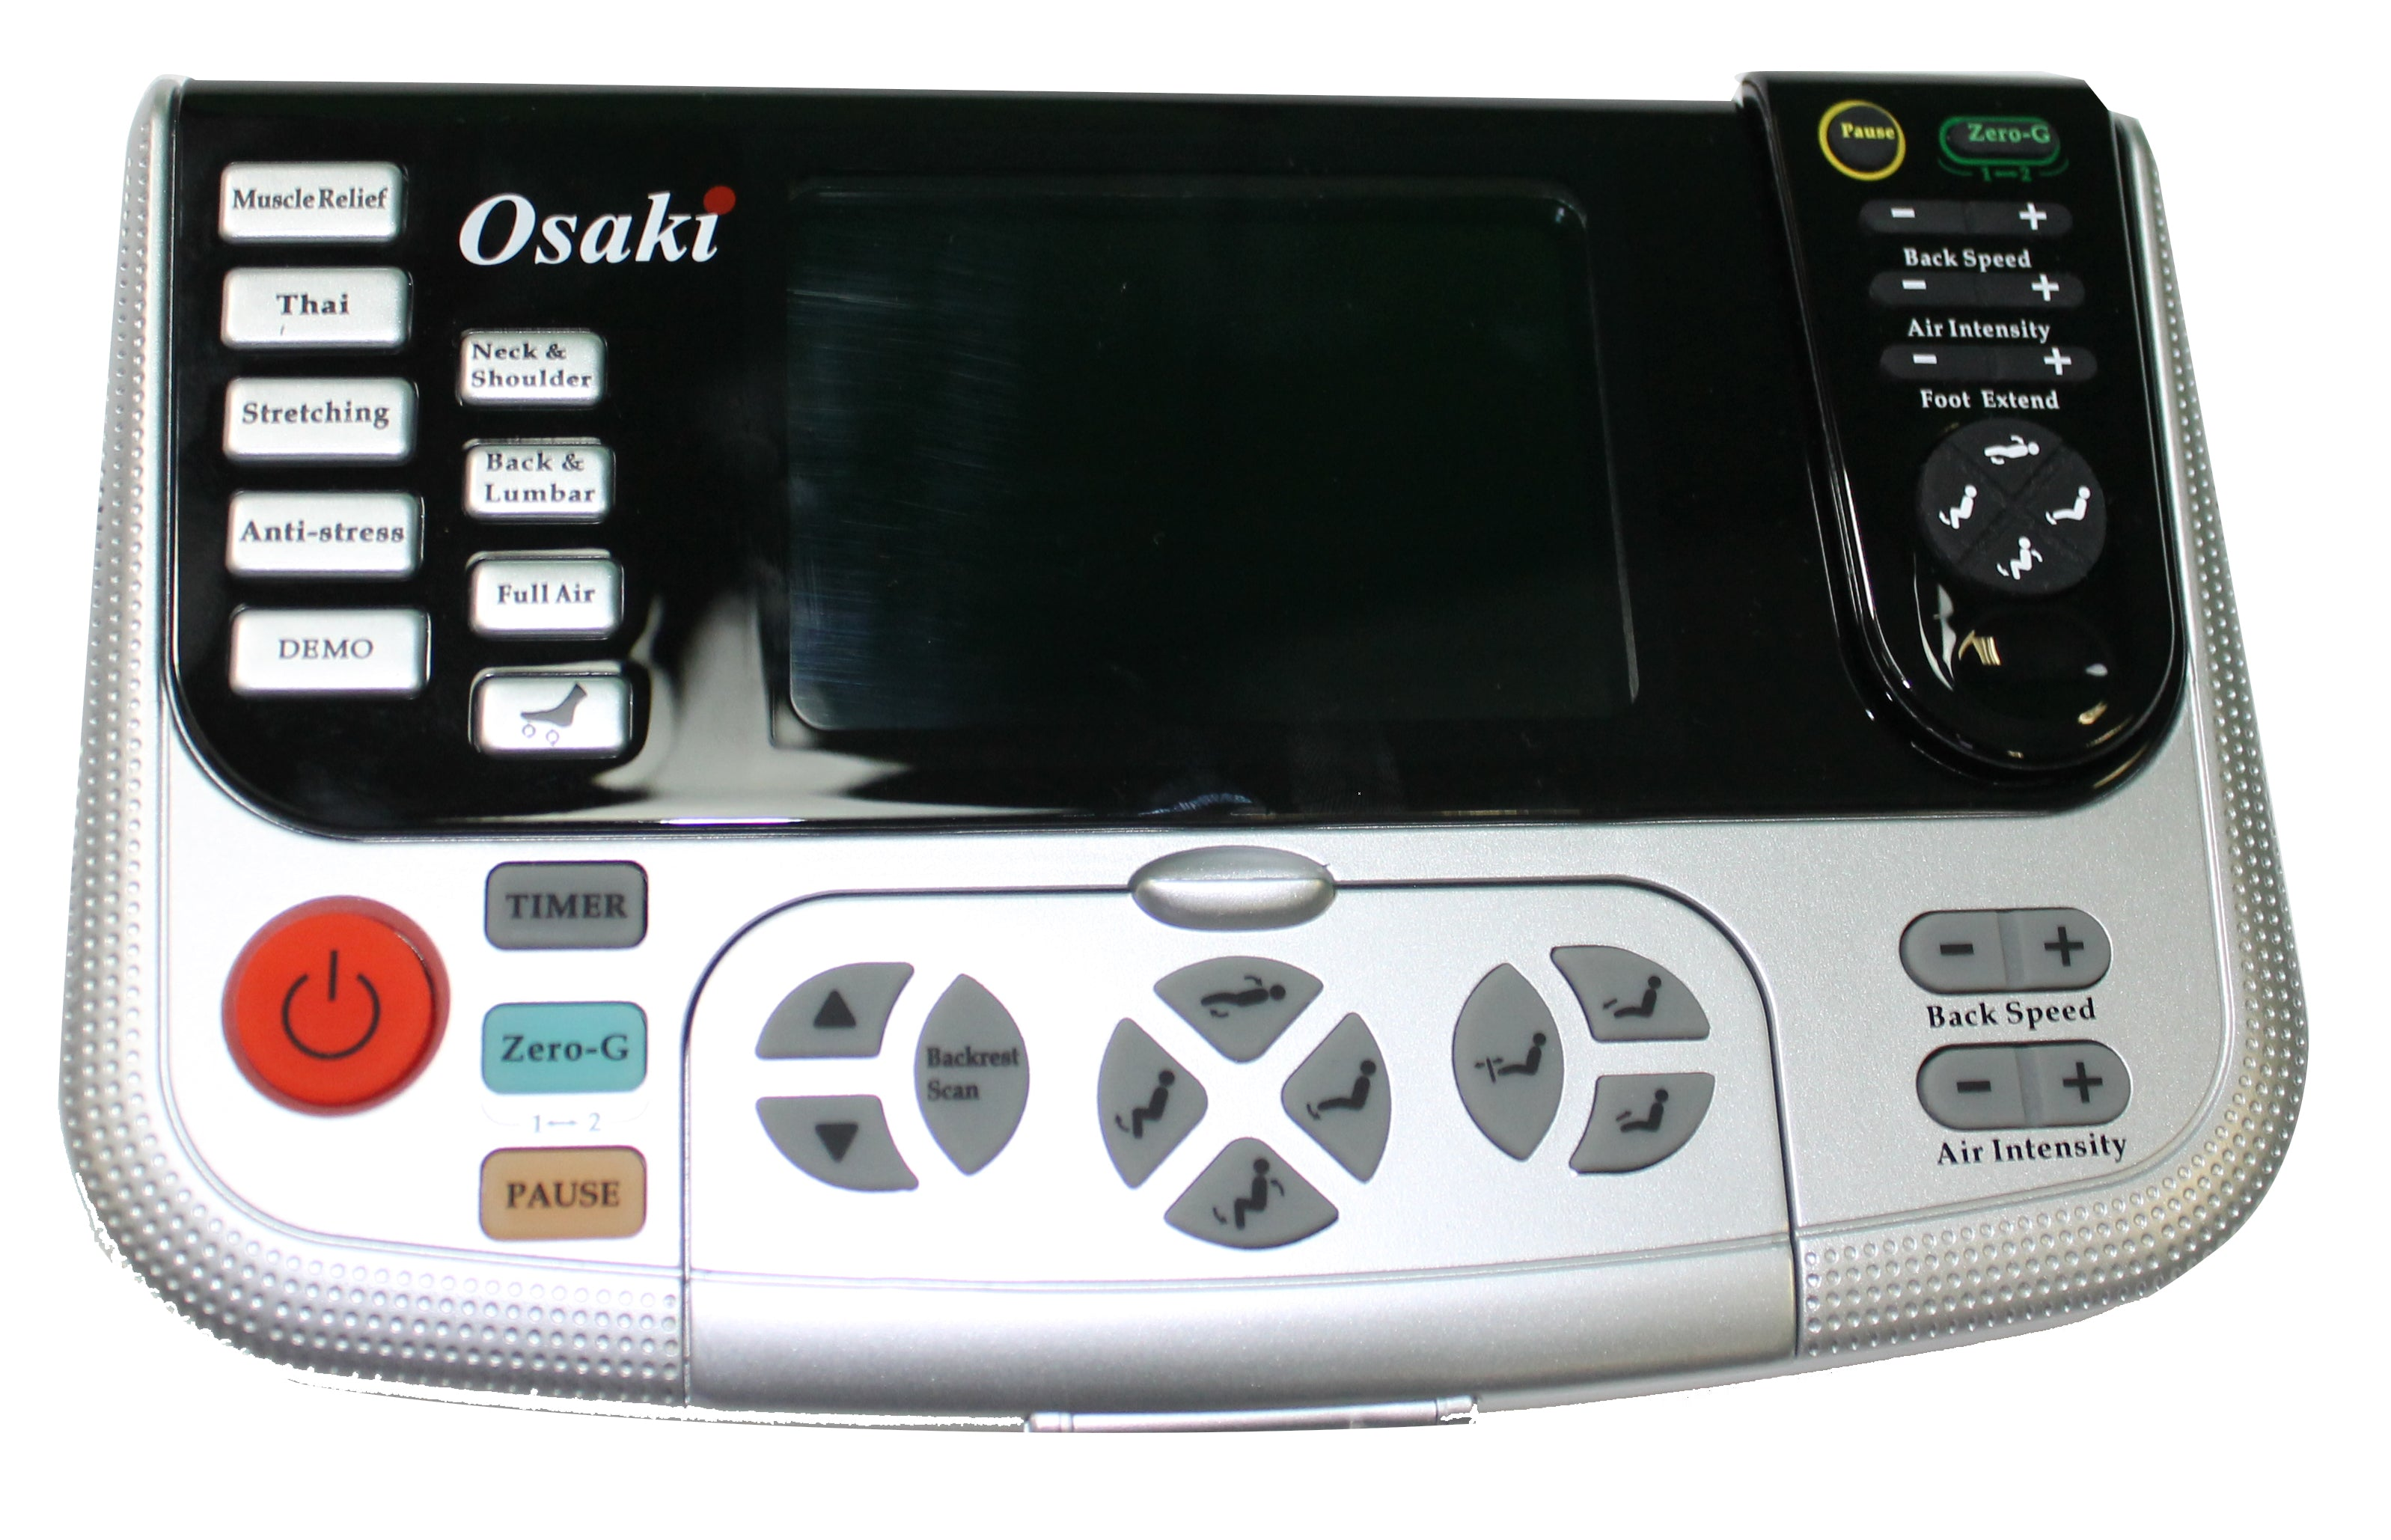 os-4000t-remote-closed.jpg